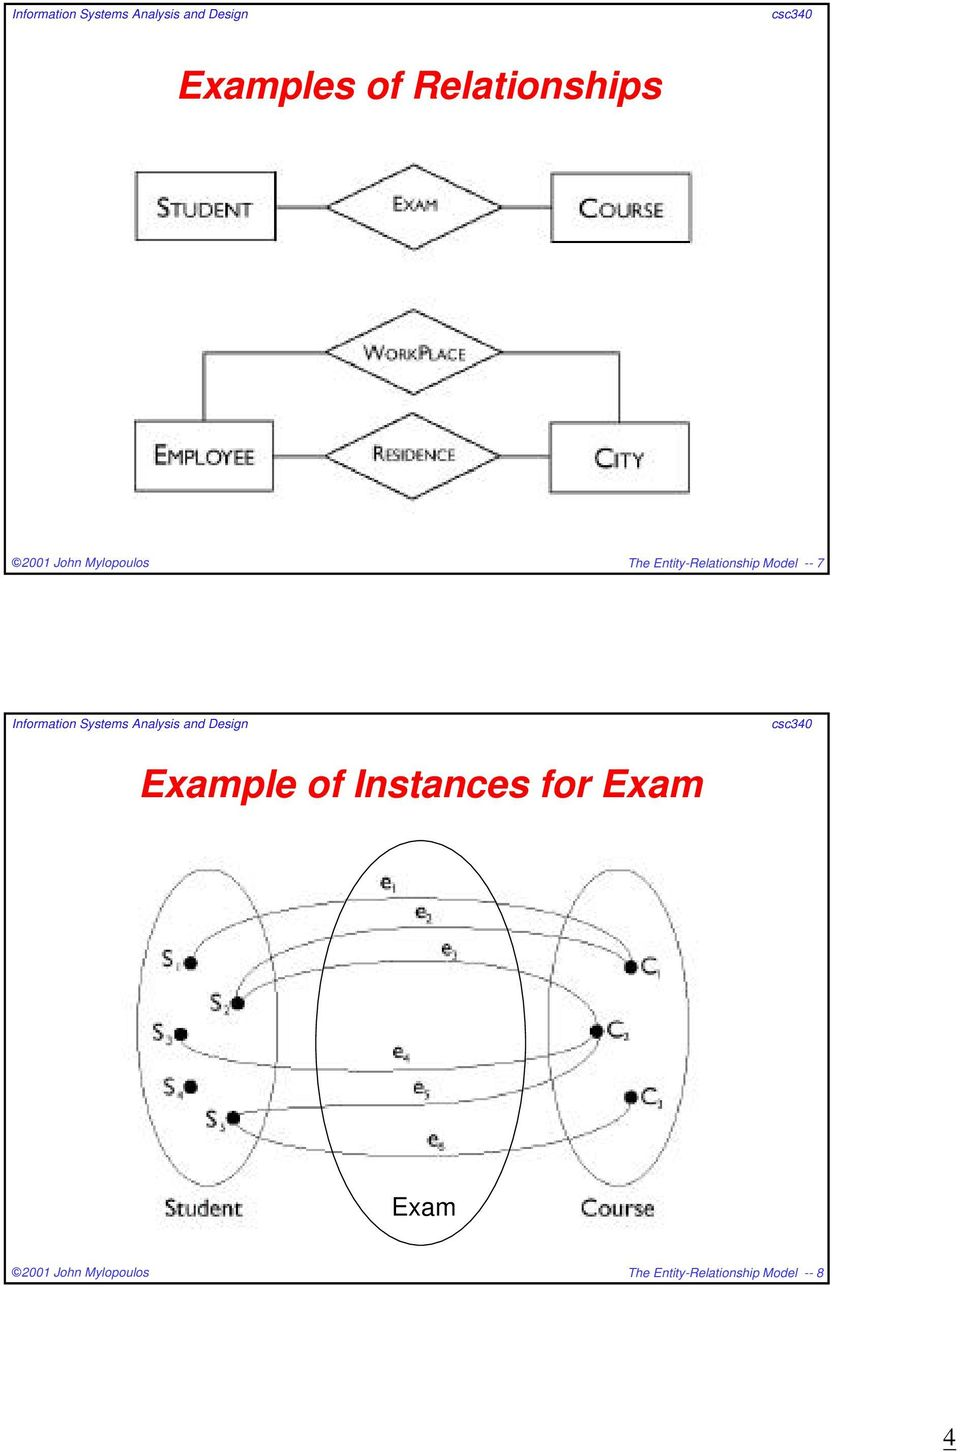 Example of Instances for Exam